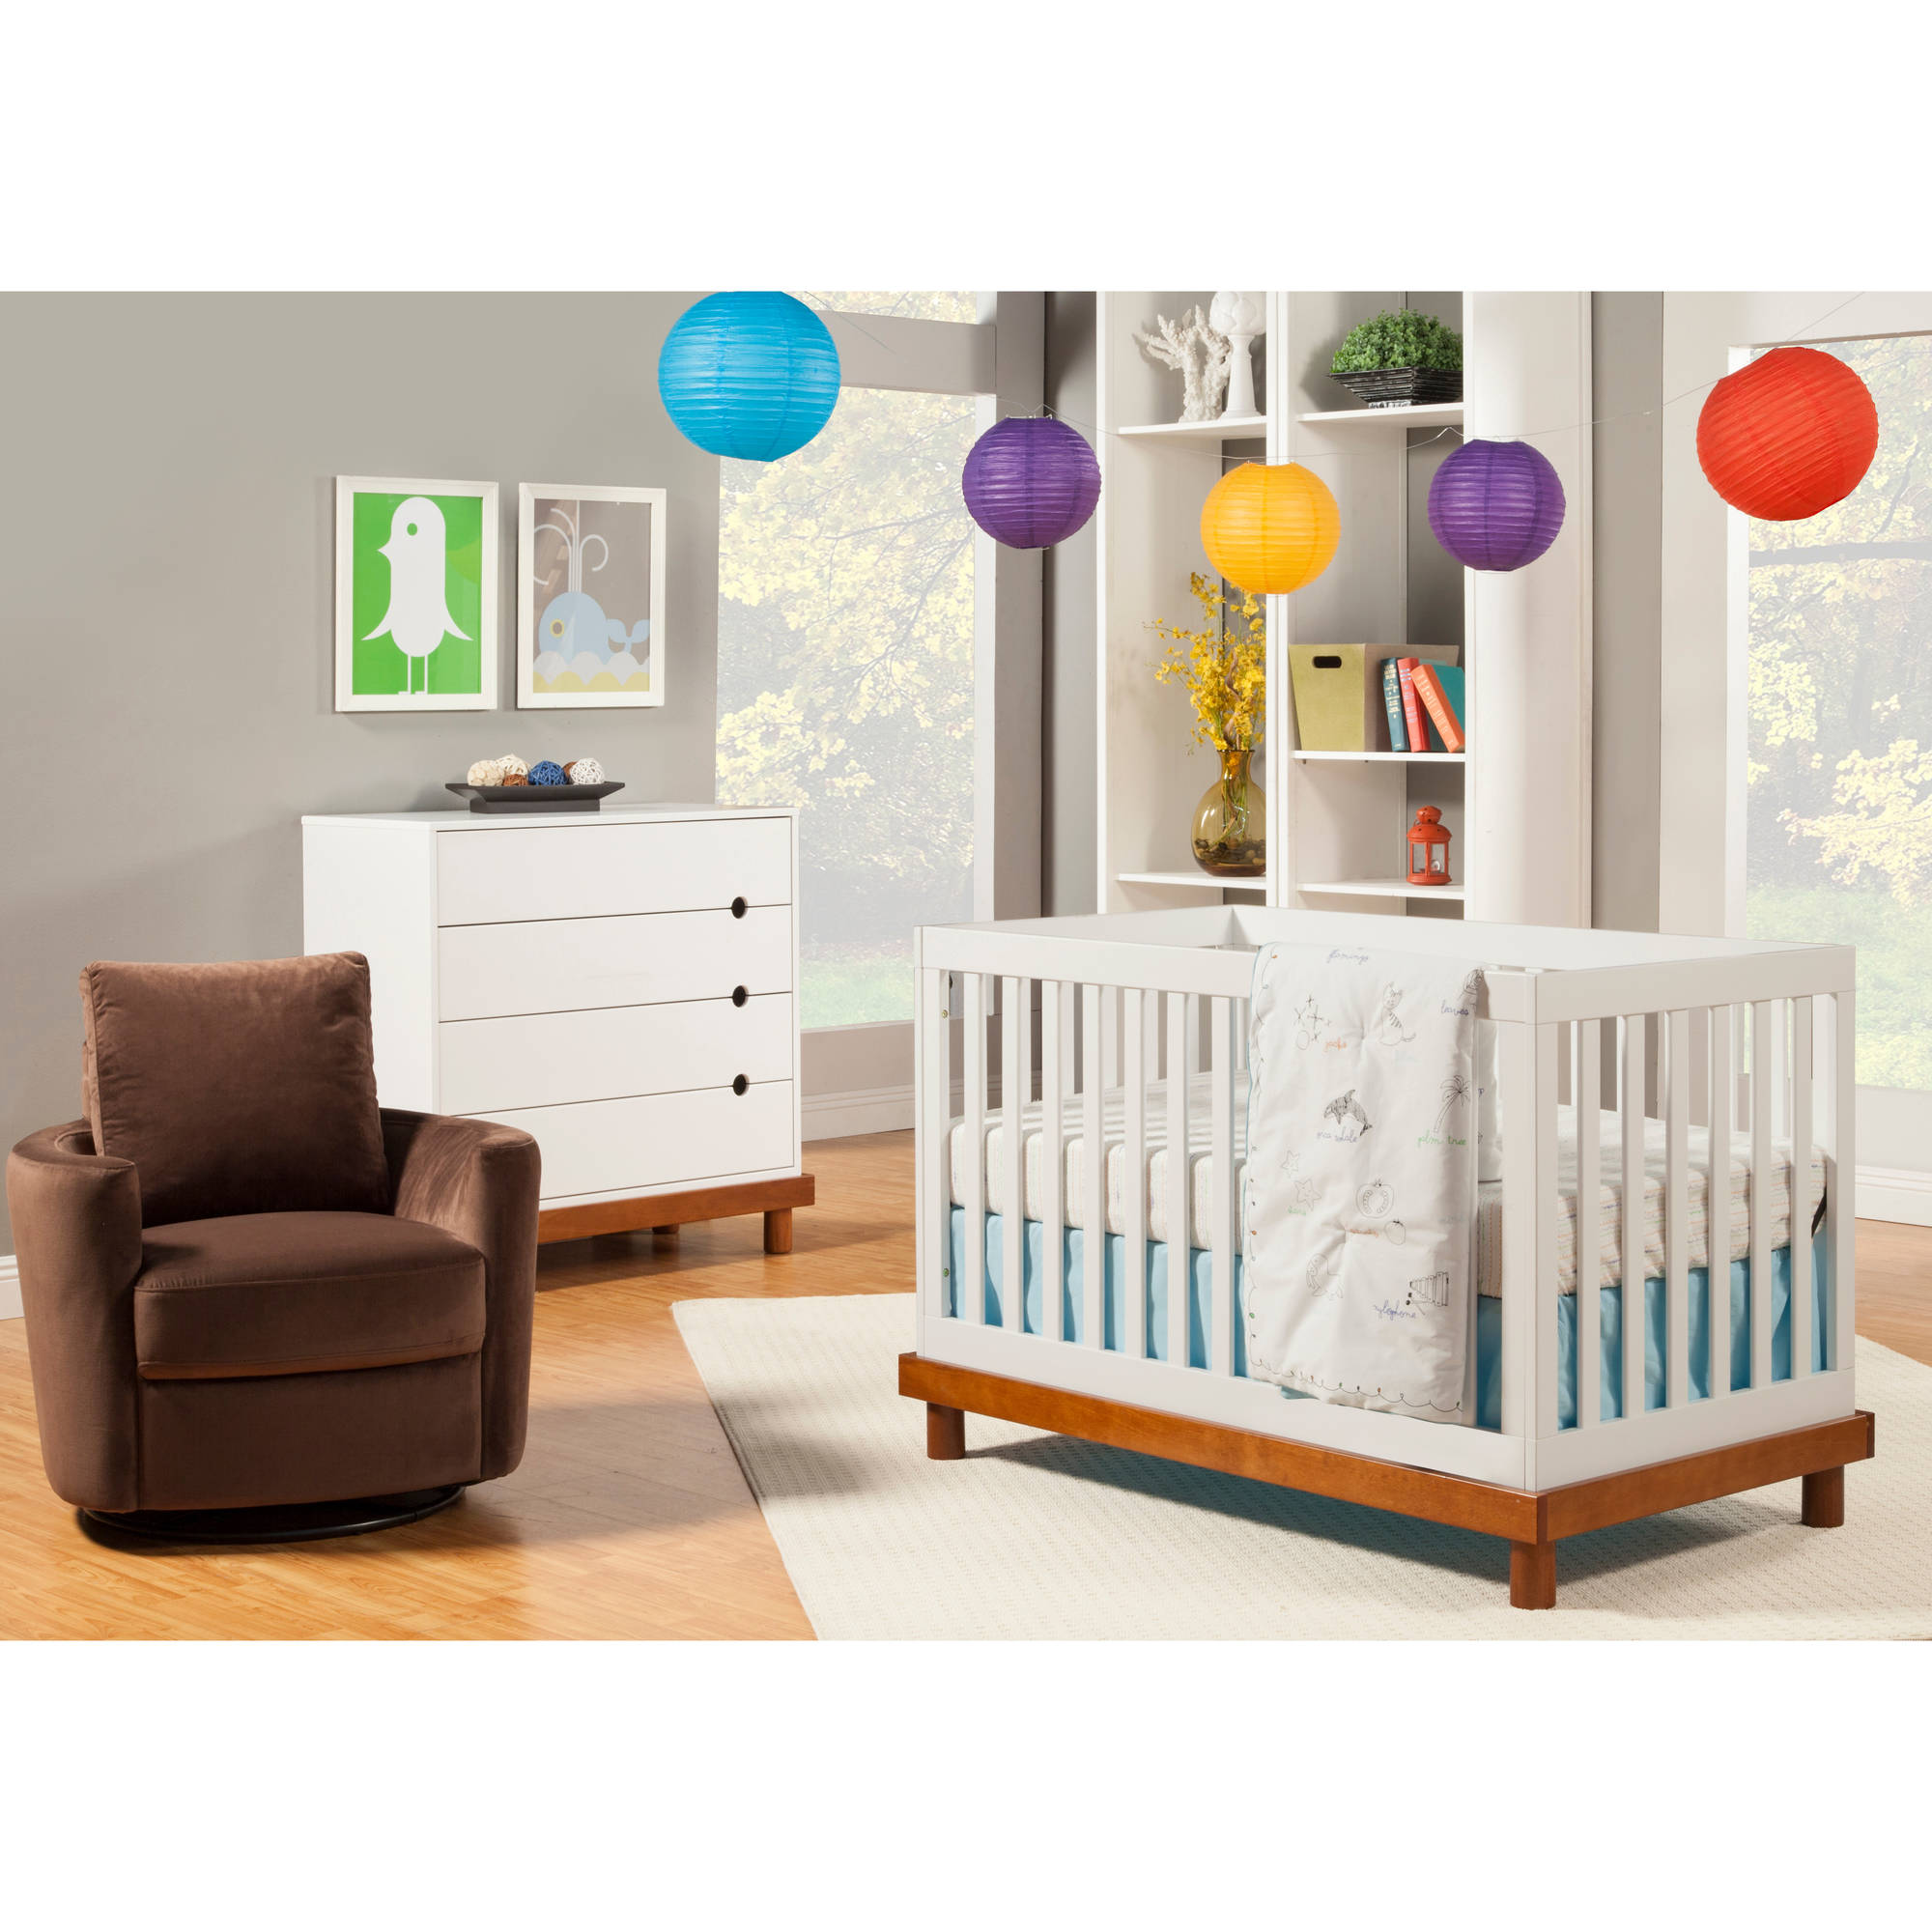 Crib for babies philippines - Baby Crib For Sale Pampanga Baby Crib For Sale Pampanga 7